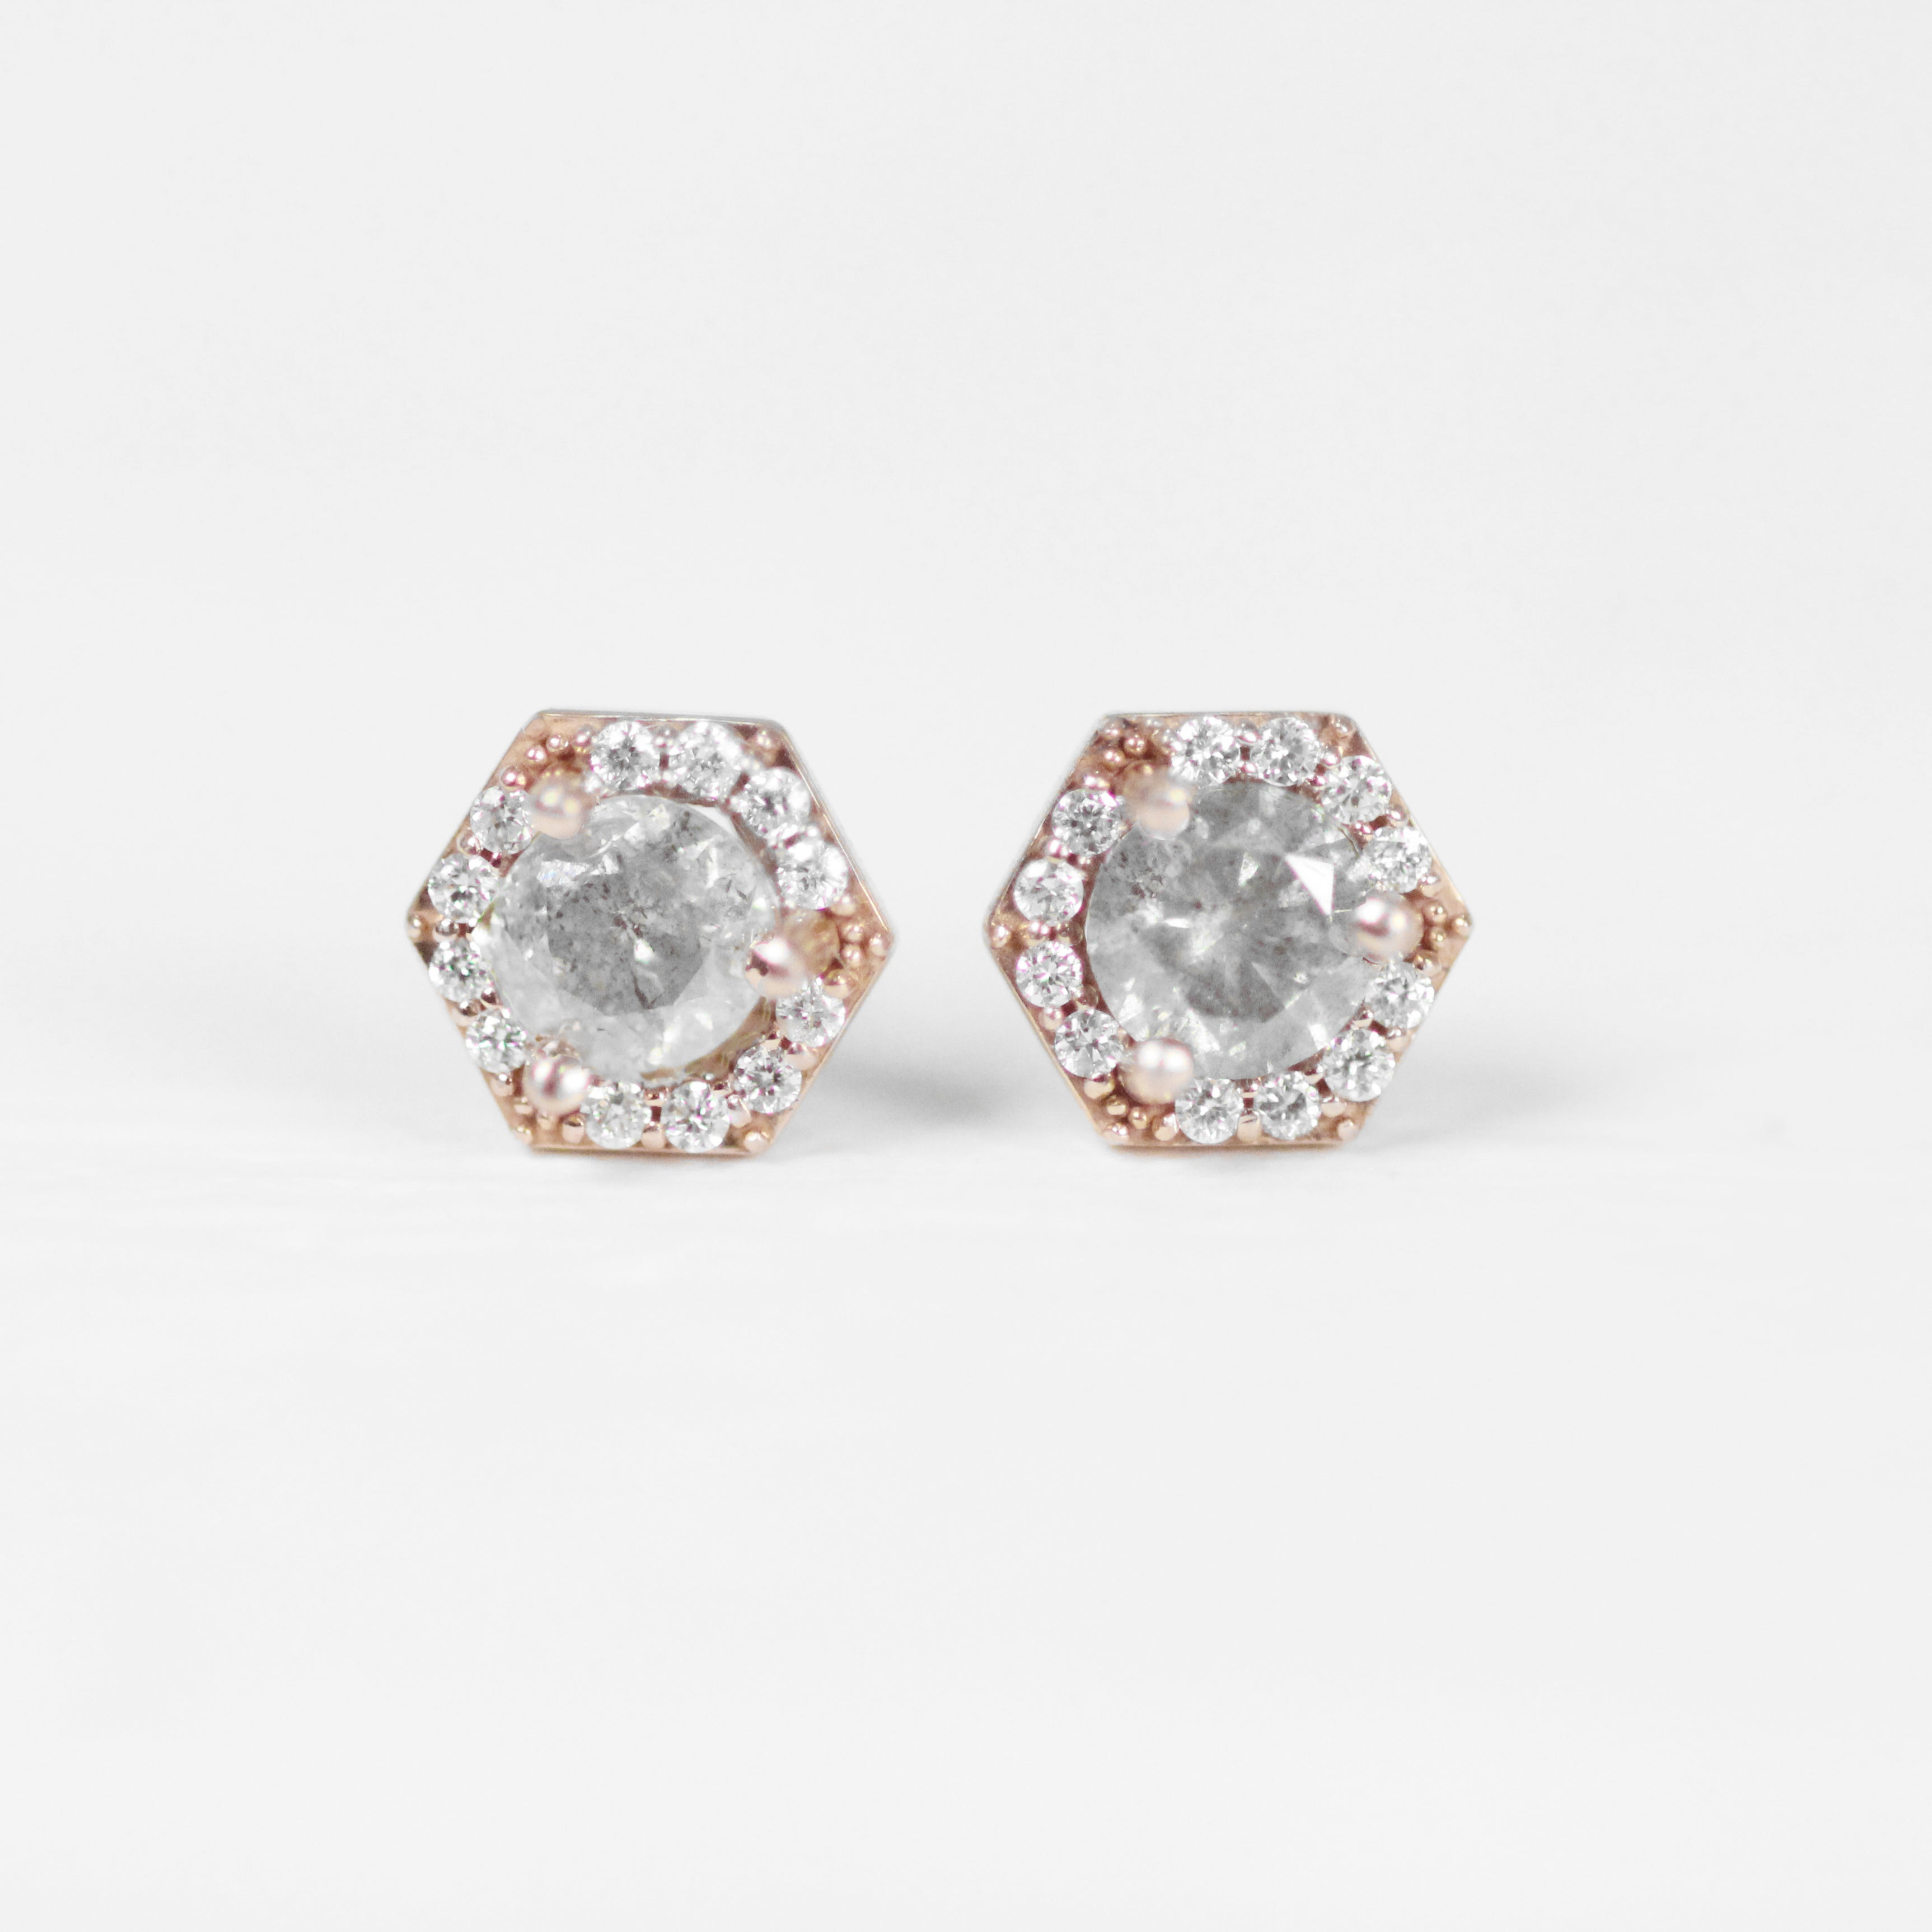 .35 Carat Hexagon Halo Earrings Stud Pair with Light Gray Celestial Diamonds in 14k gold- Ready to Ship - Celestial Diamonds ® by Midwinter Co.